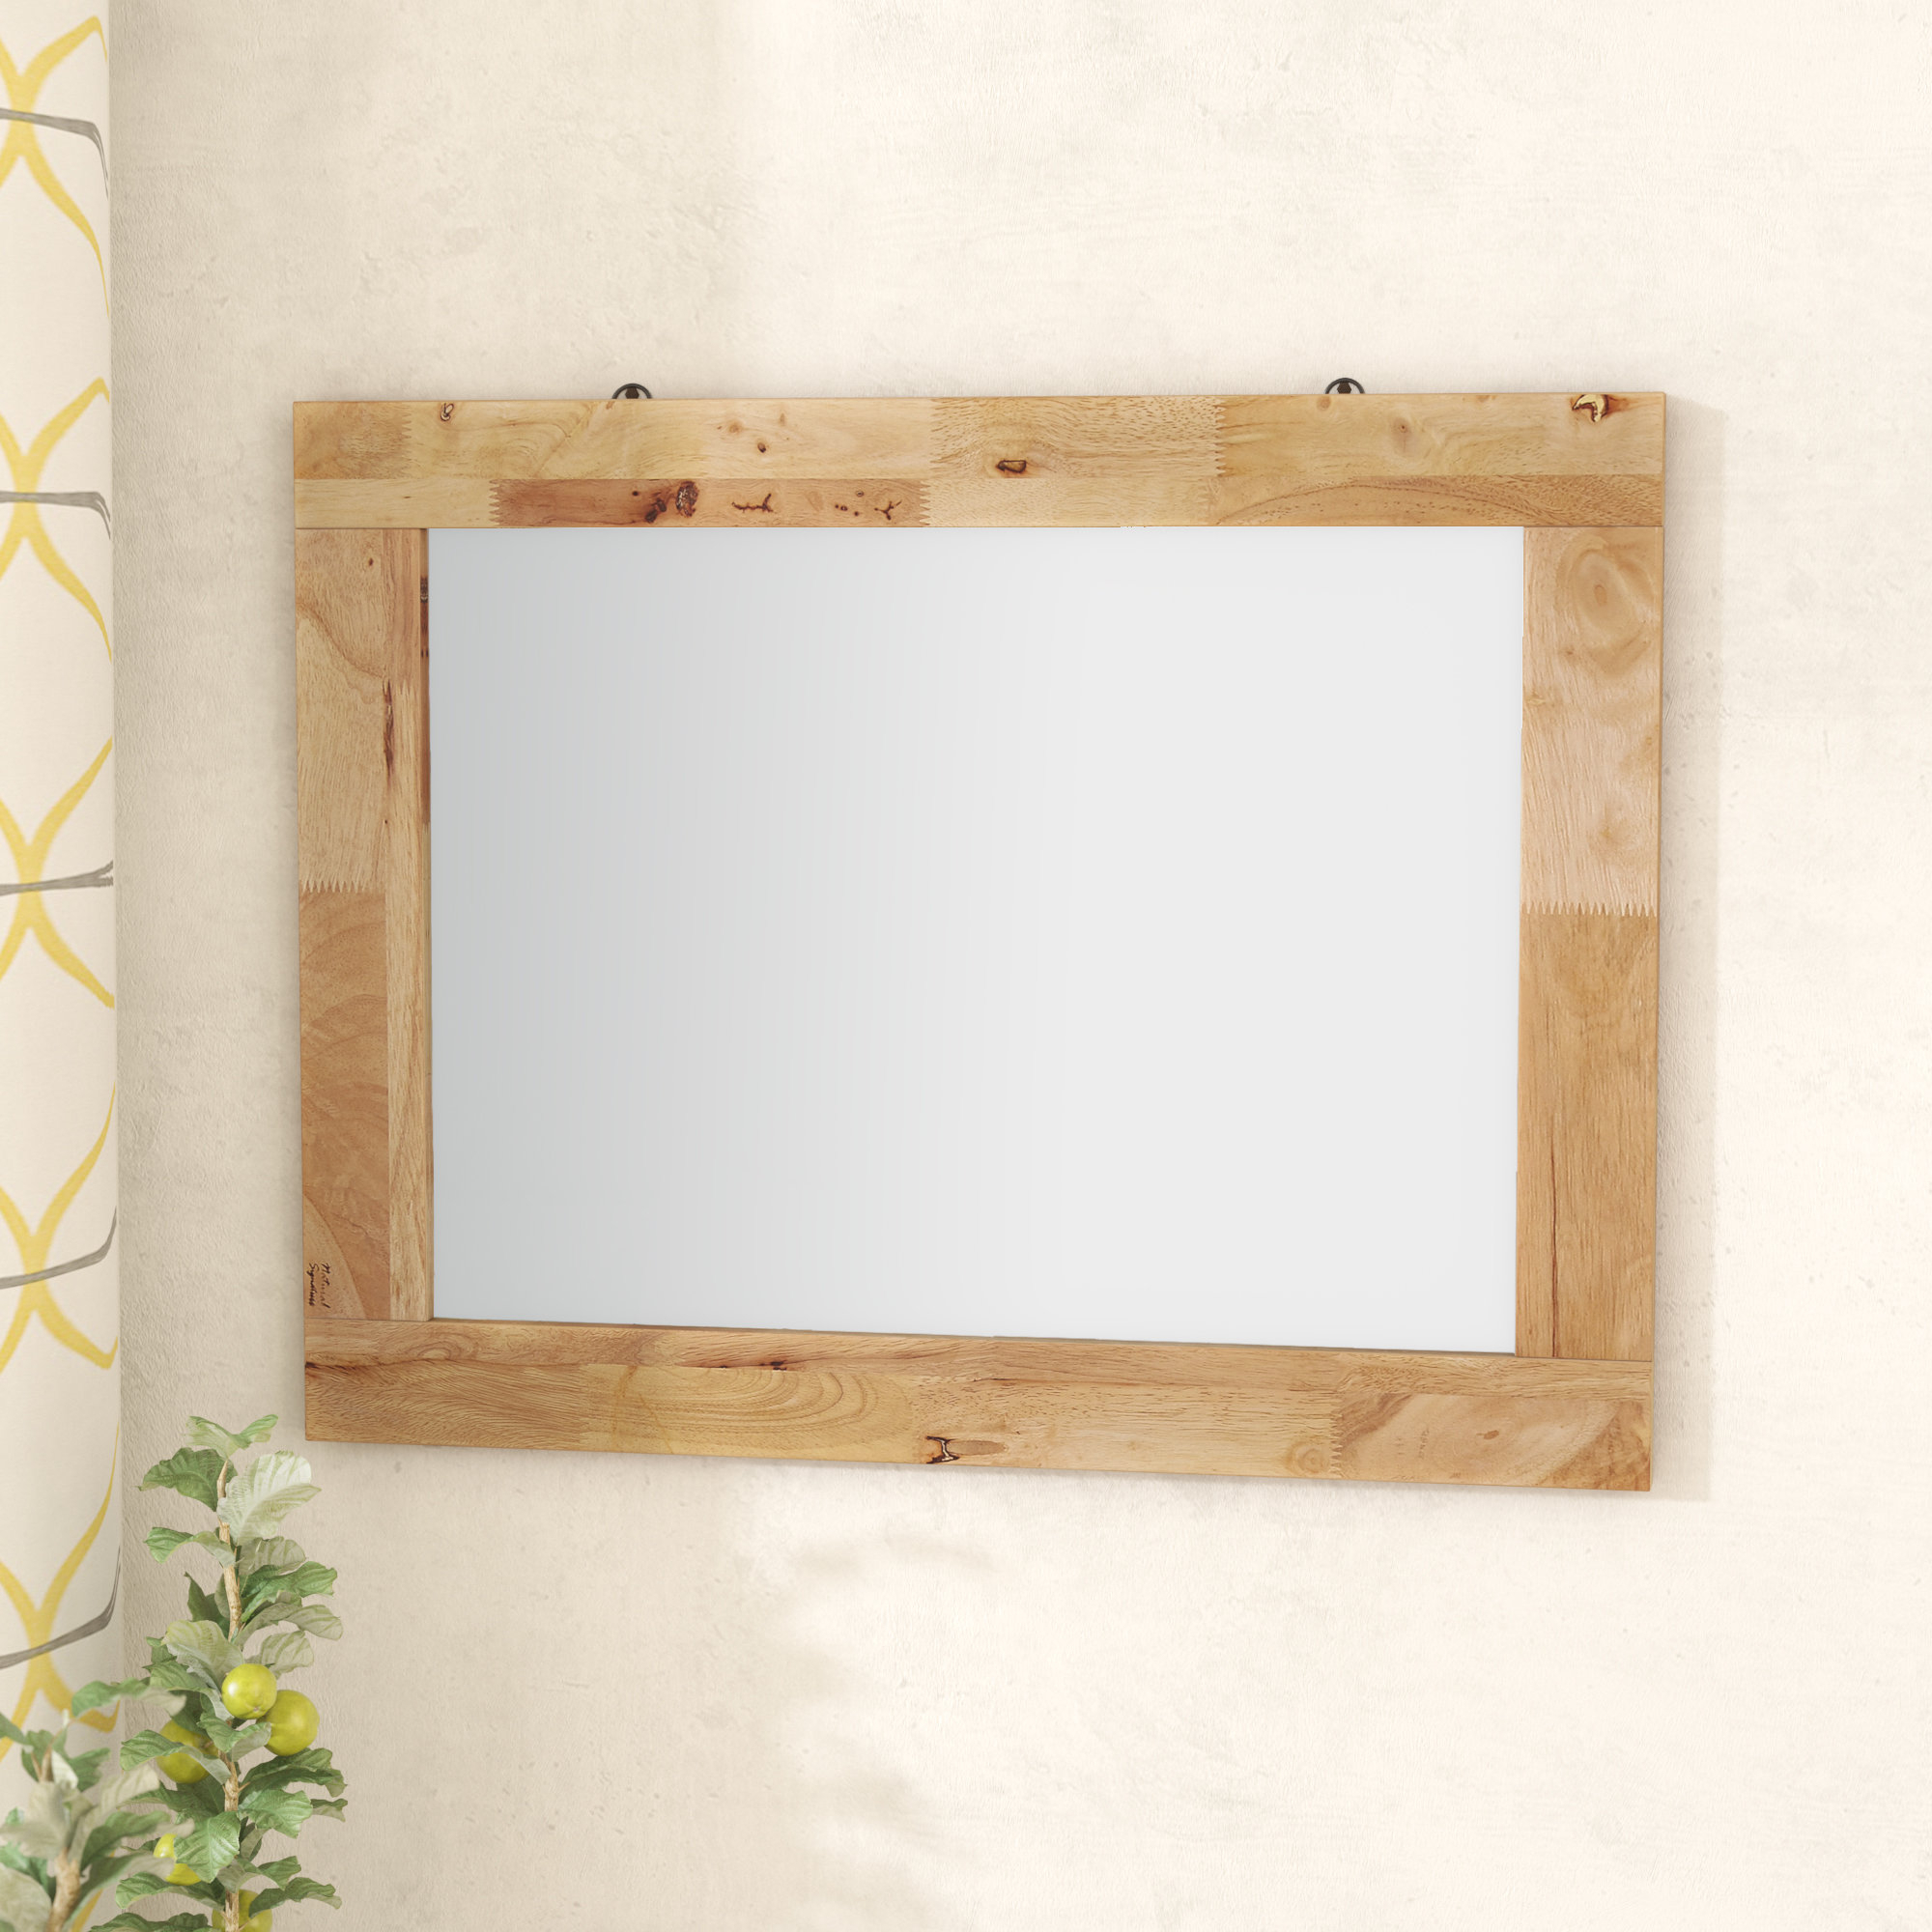 Barney Rustic Accent Wall Mirror regarding Longwood Rustic Beveled Accent Mirrors (Image 3 of 30)